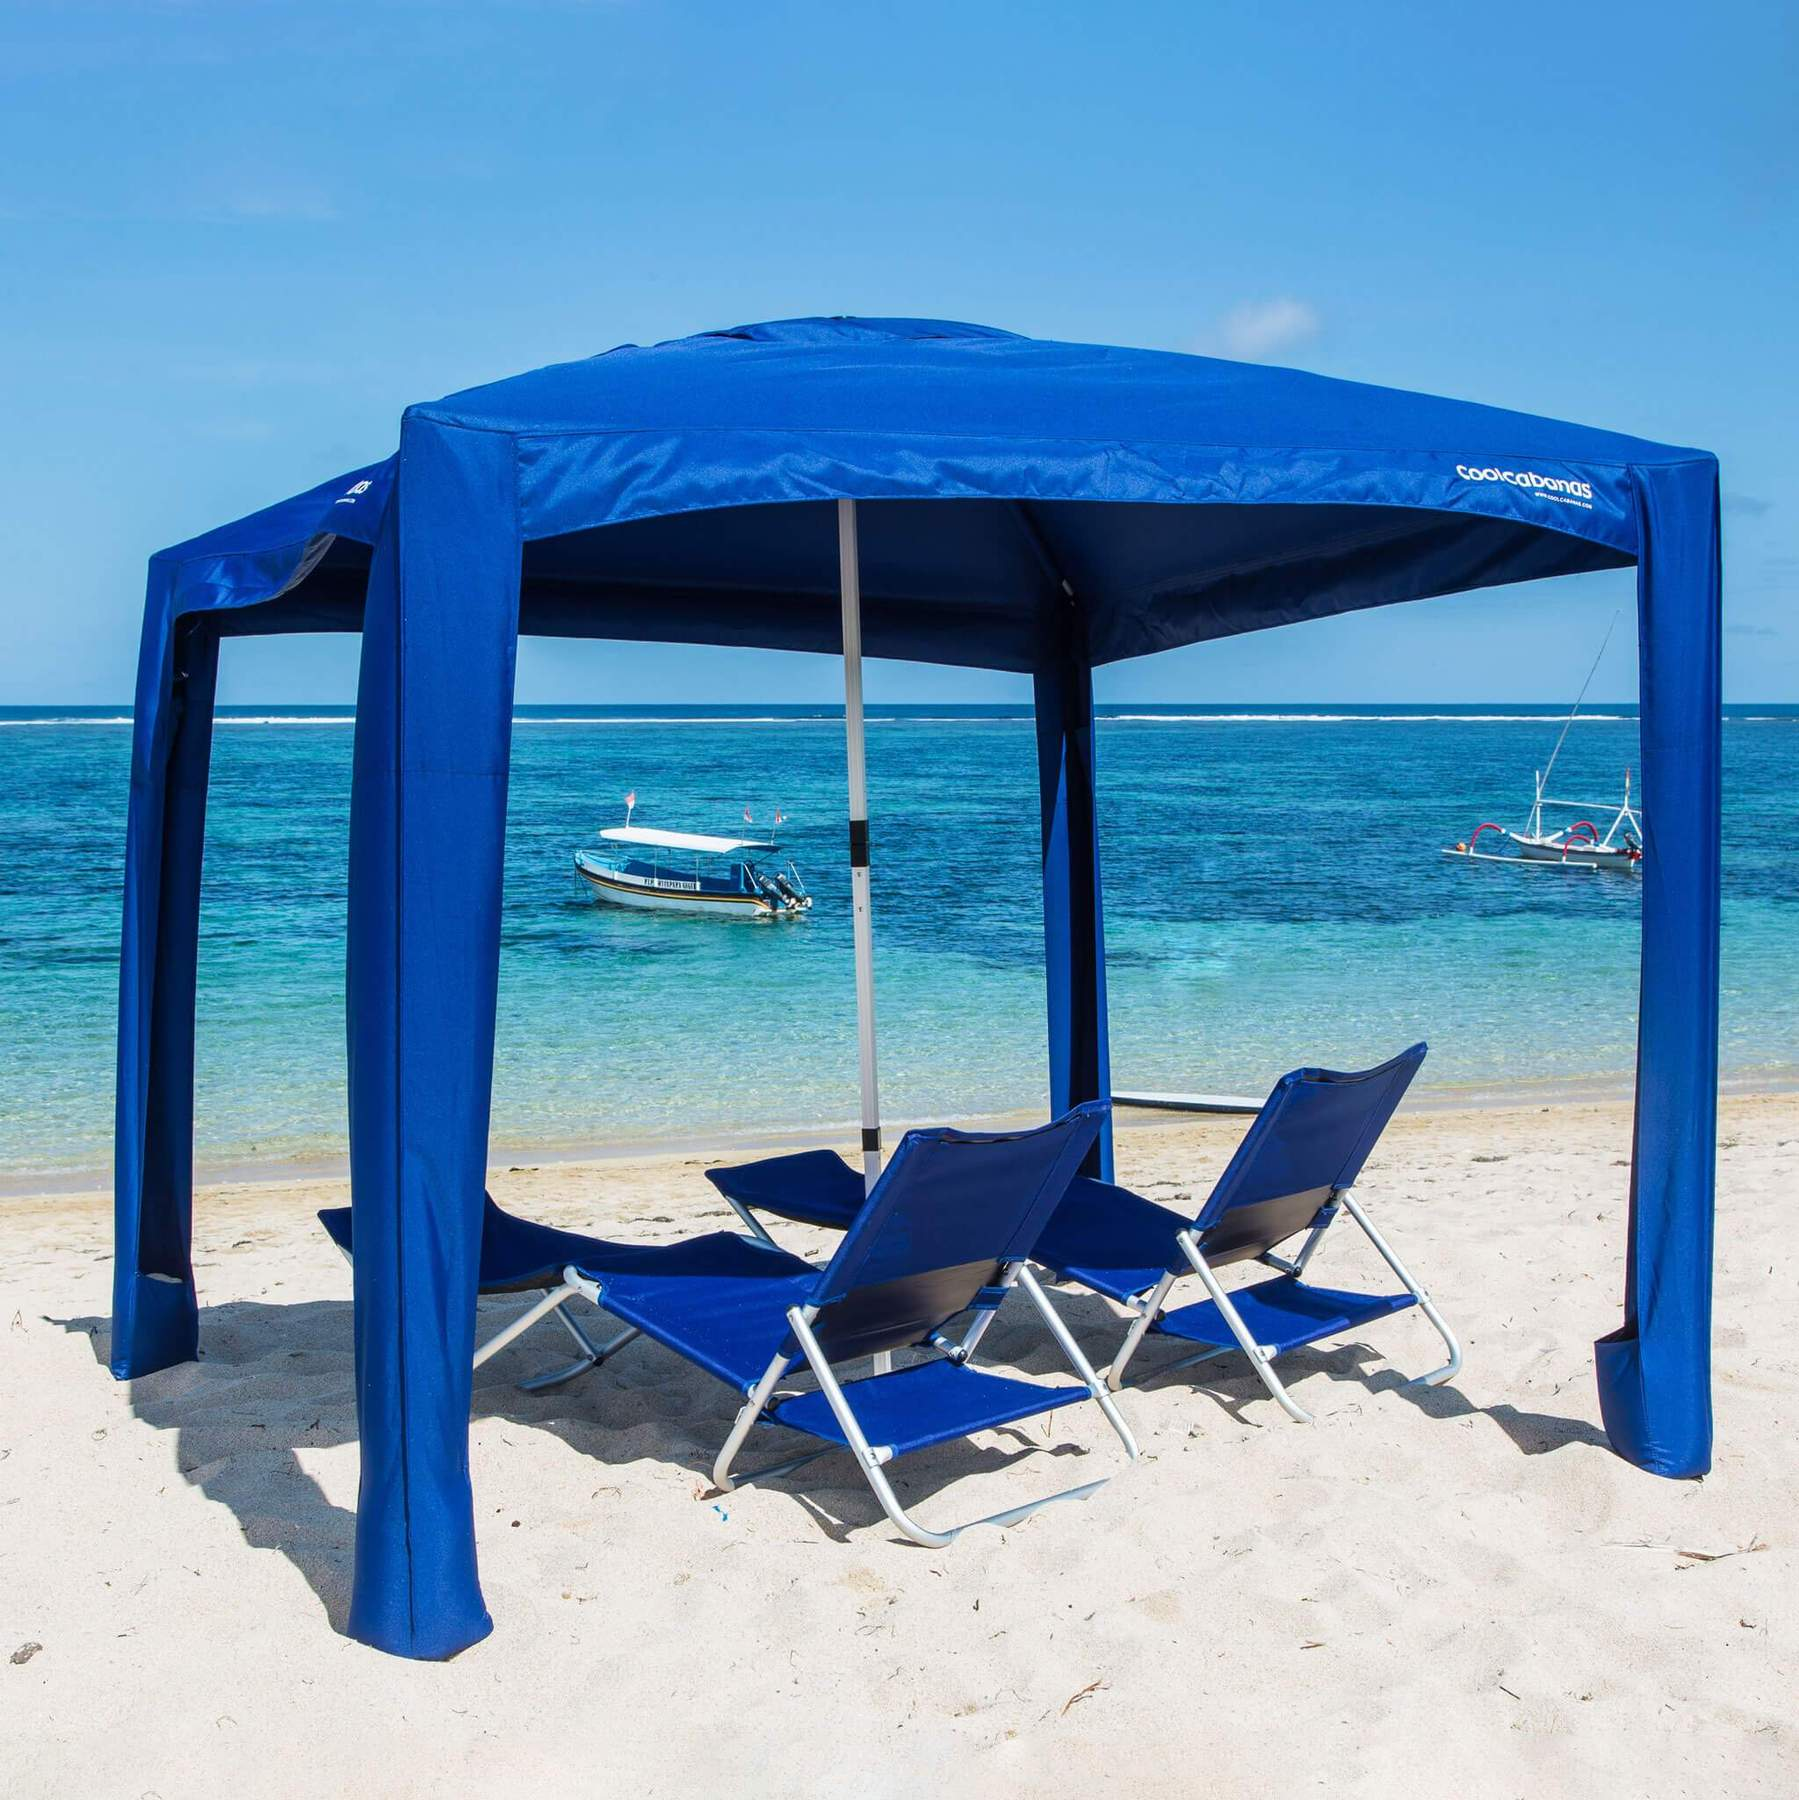 CoolCabanas | Cool Cabana 5 Solid Navy set up on beach with Set of 2 CoolCabana Beach Loungers underneath